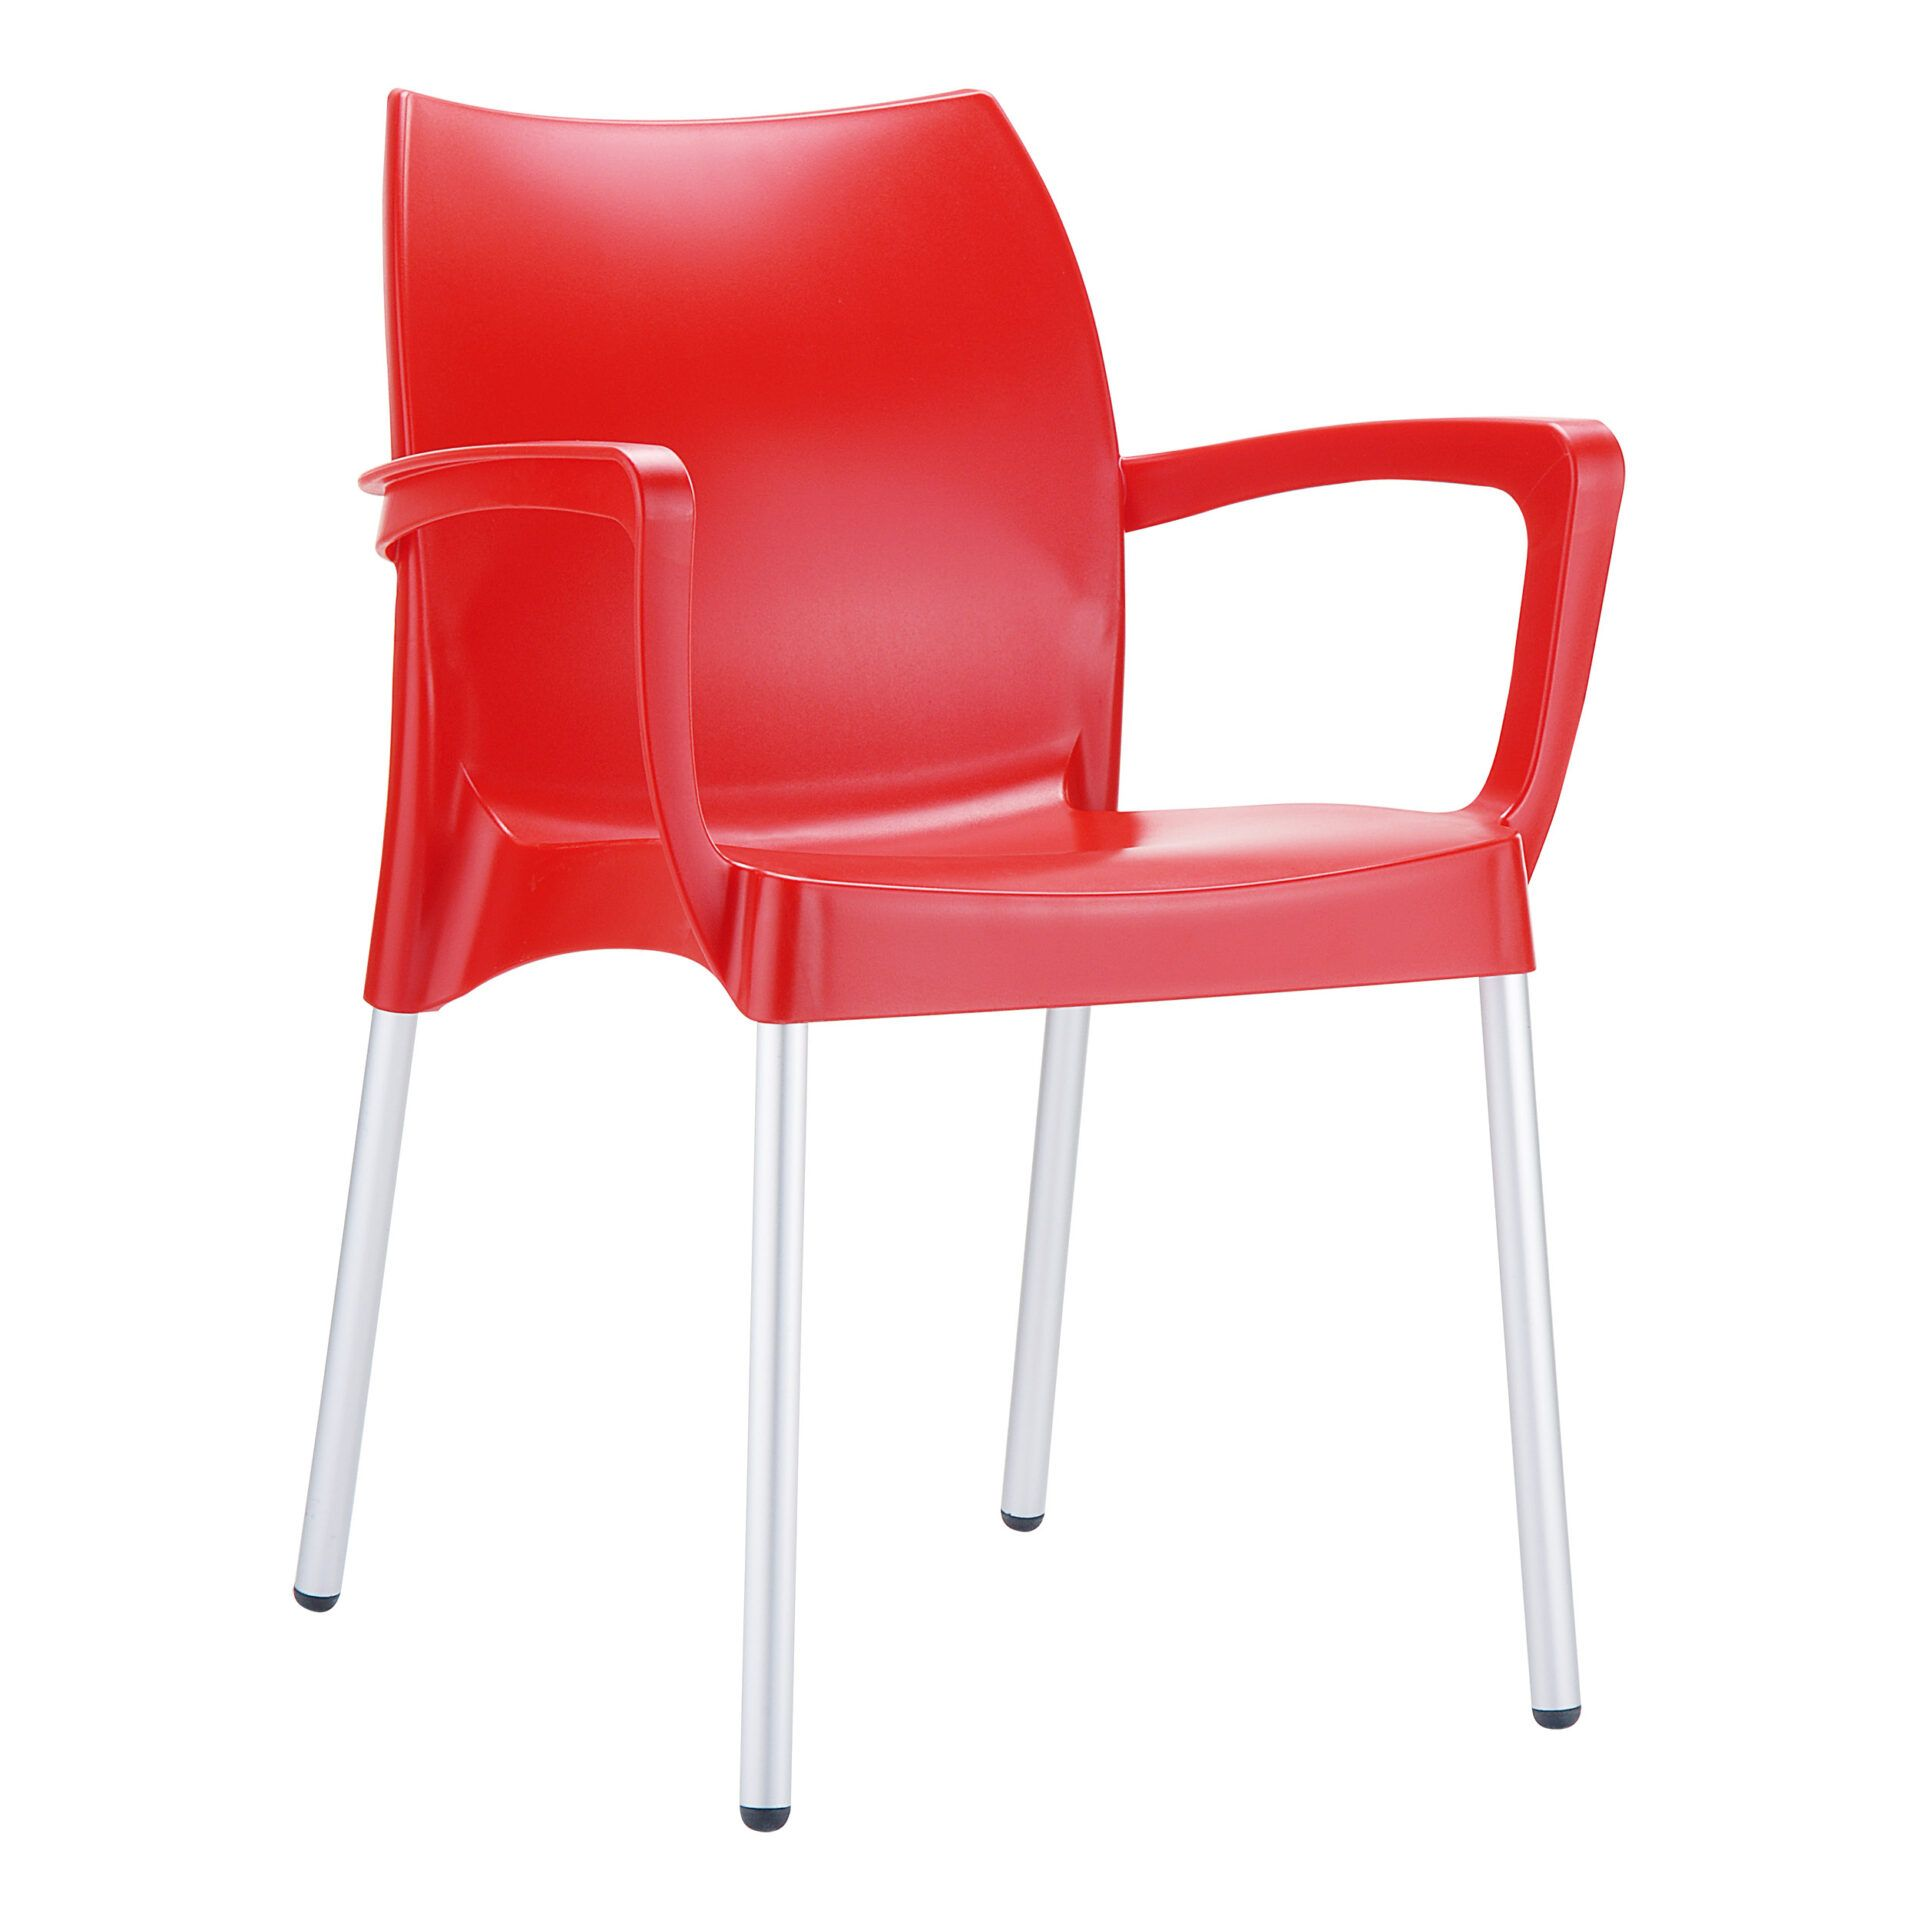 commercial polypropylene dolce chair red front side